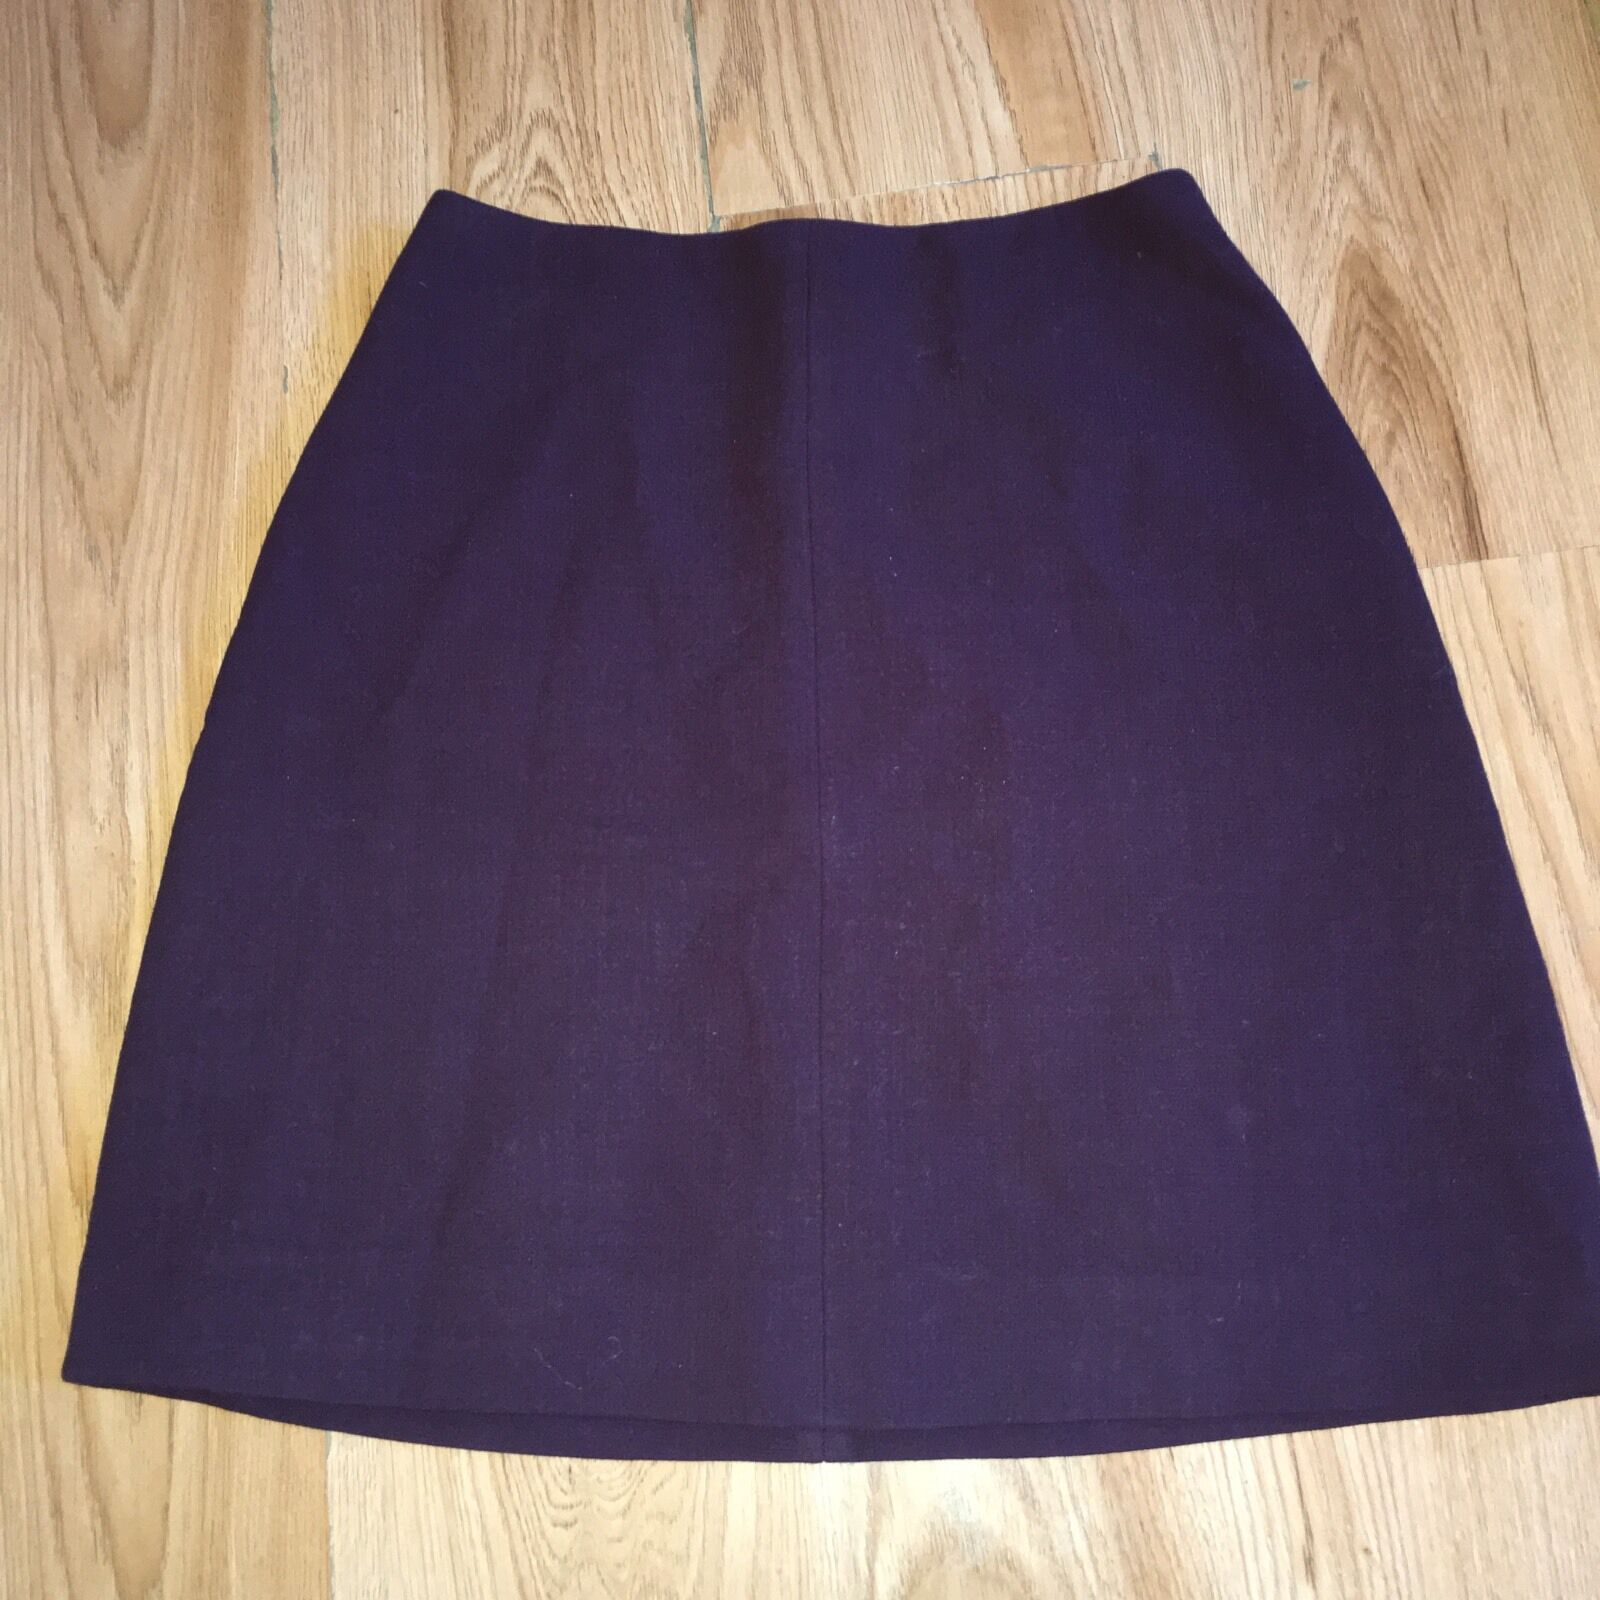 Carven Burgundy Plum Purple Wool Mini Skirt FR 38,